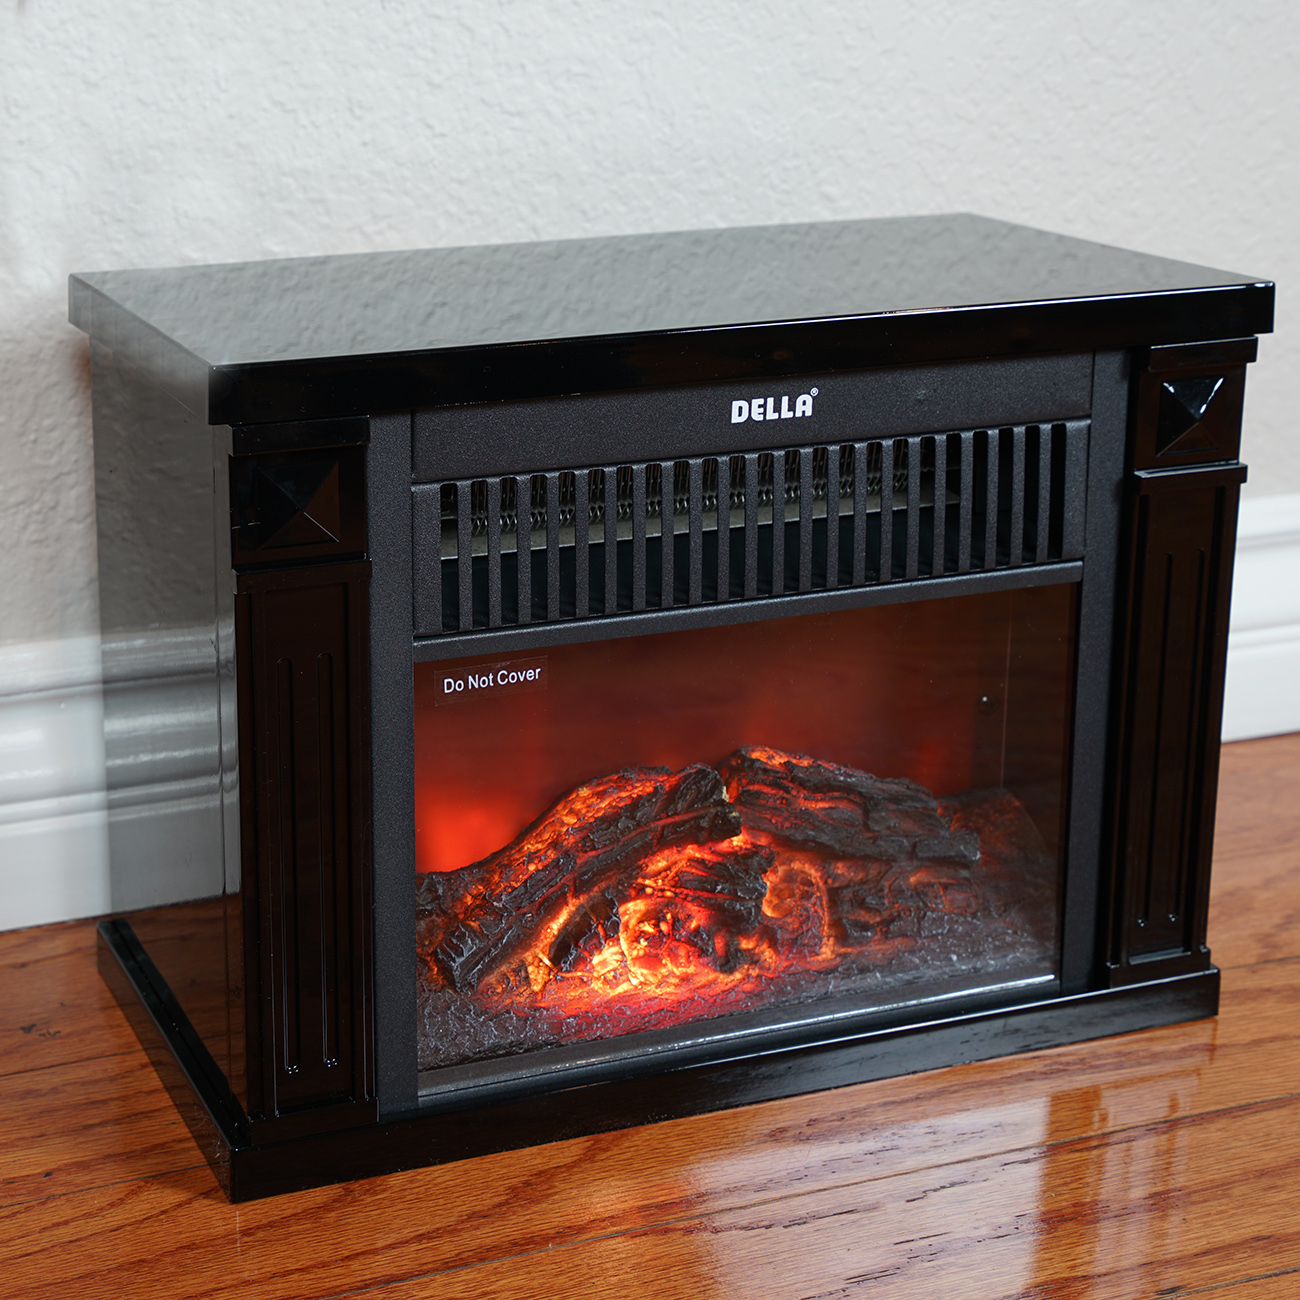 Tabletop Infrared Space Heater Flame Effect Portable Mini Electric Fireplace New Ebay